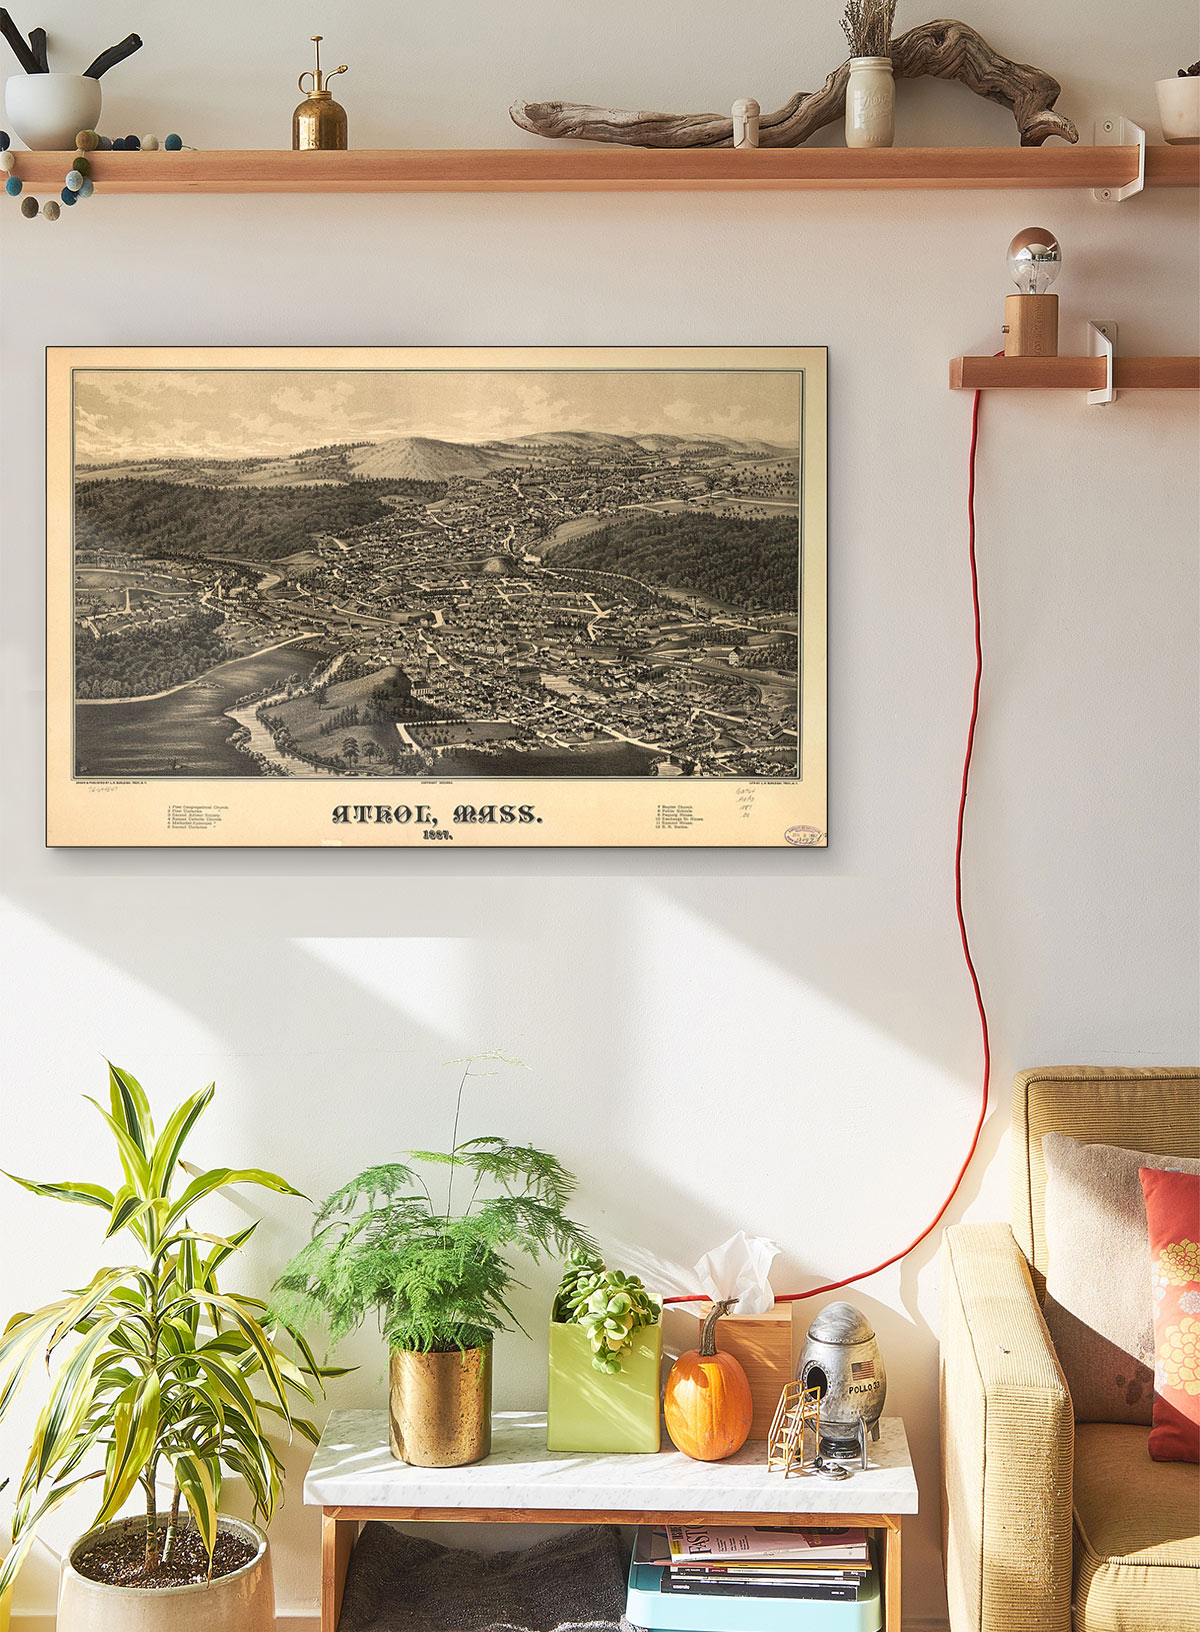 Athol Mass 1887 LARGE Vintage Map